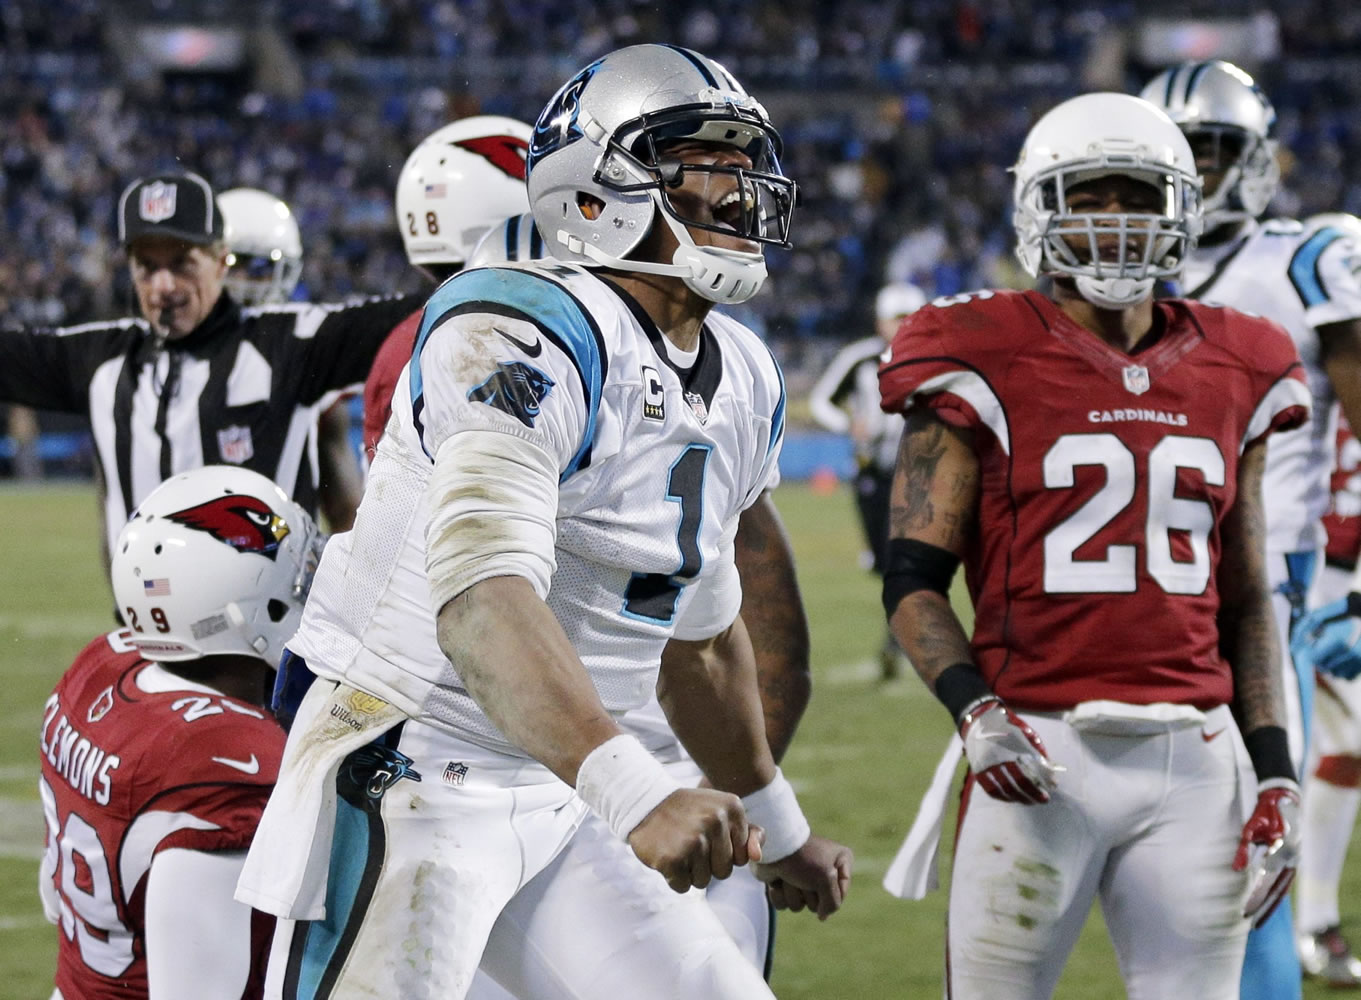 How to Watch the Cardinals-Panthers NFC Championship Game Live Stream Online